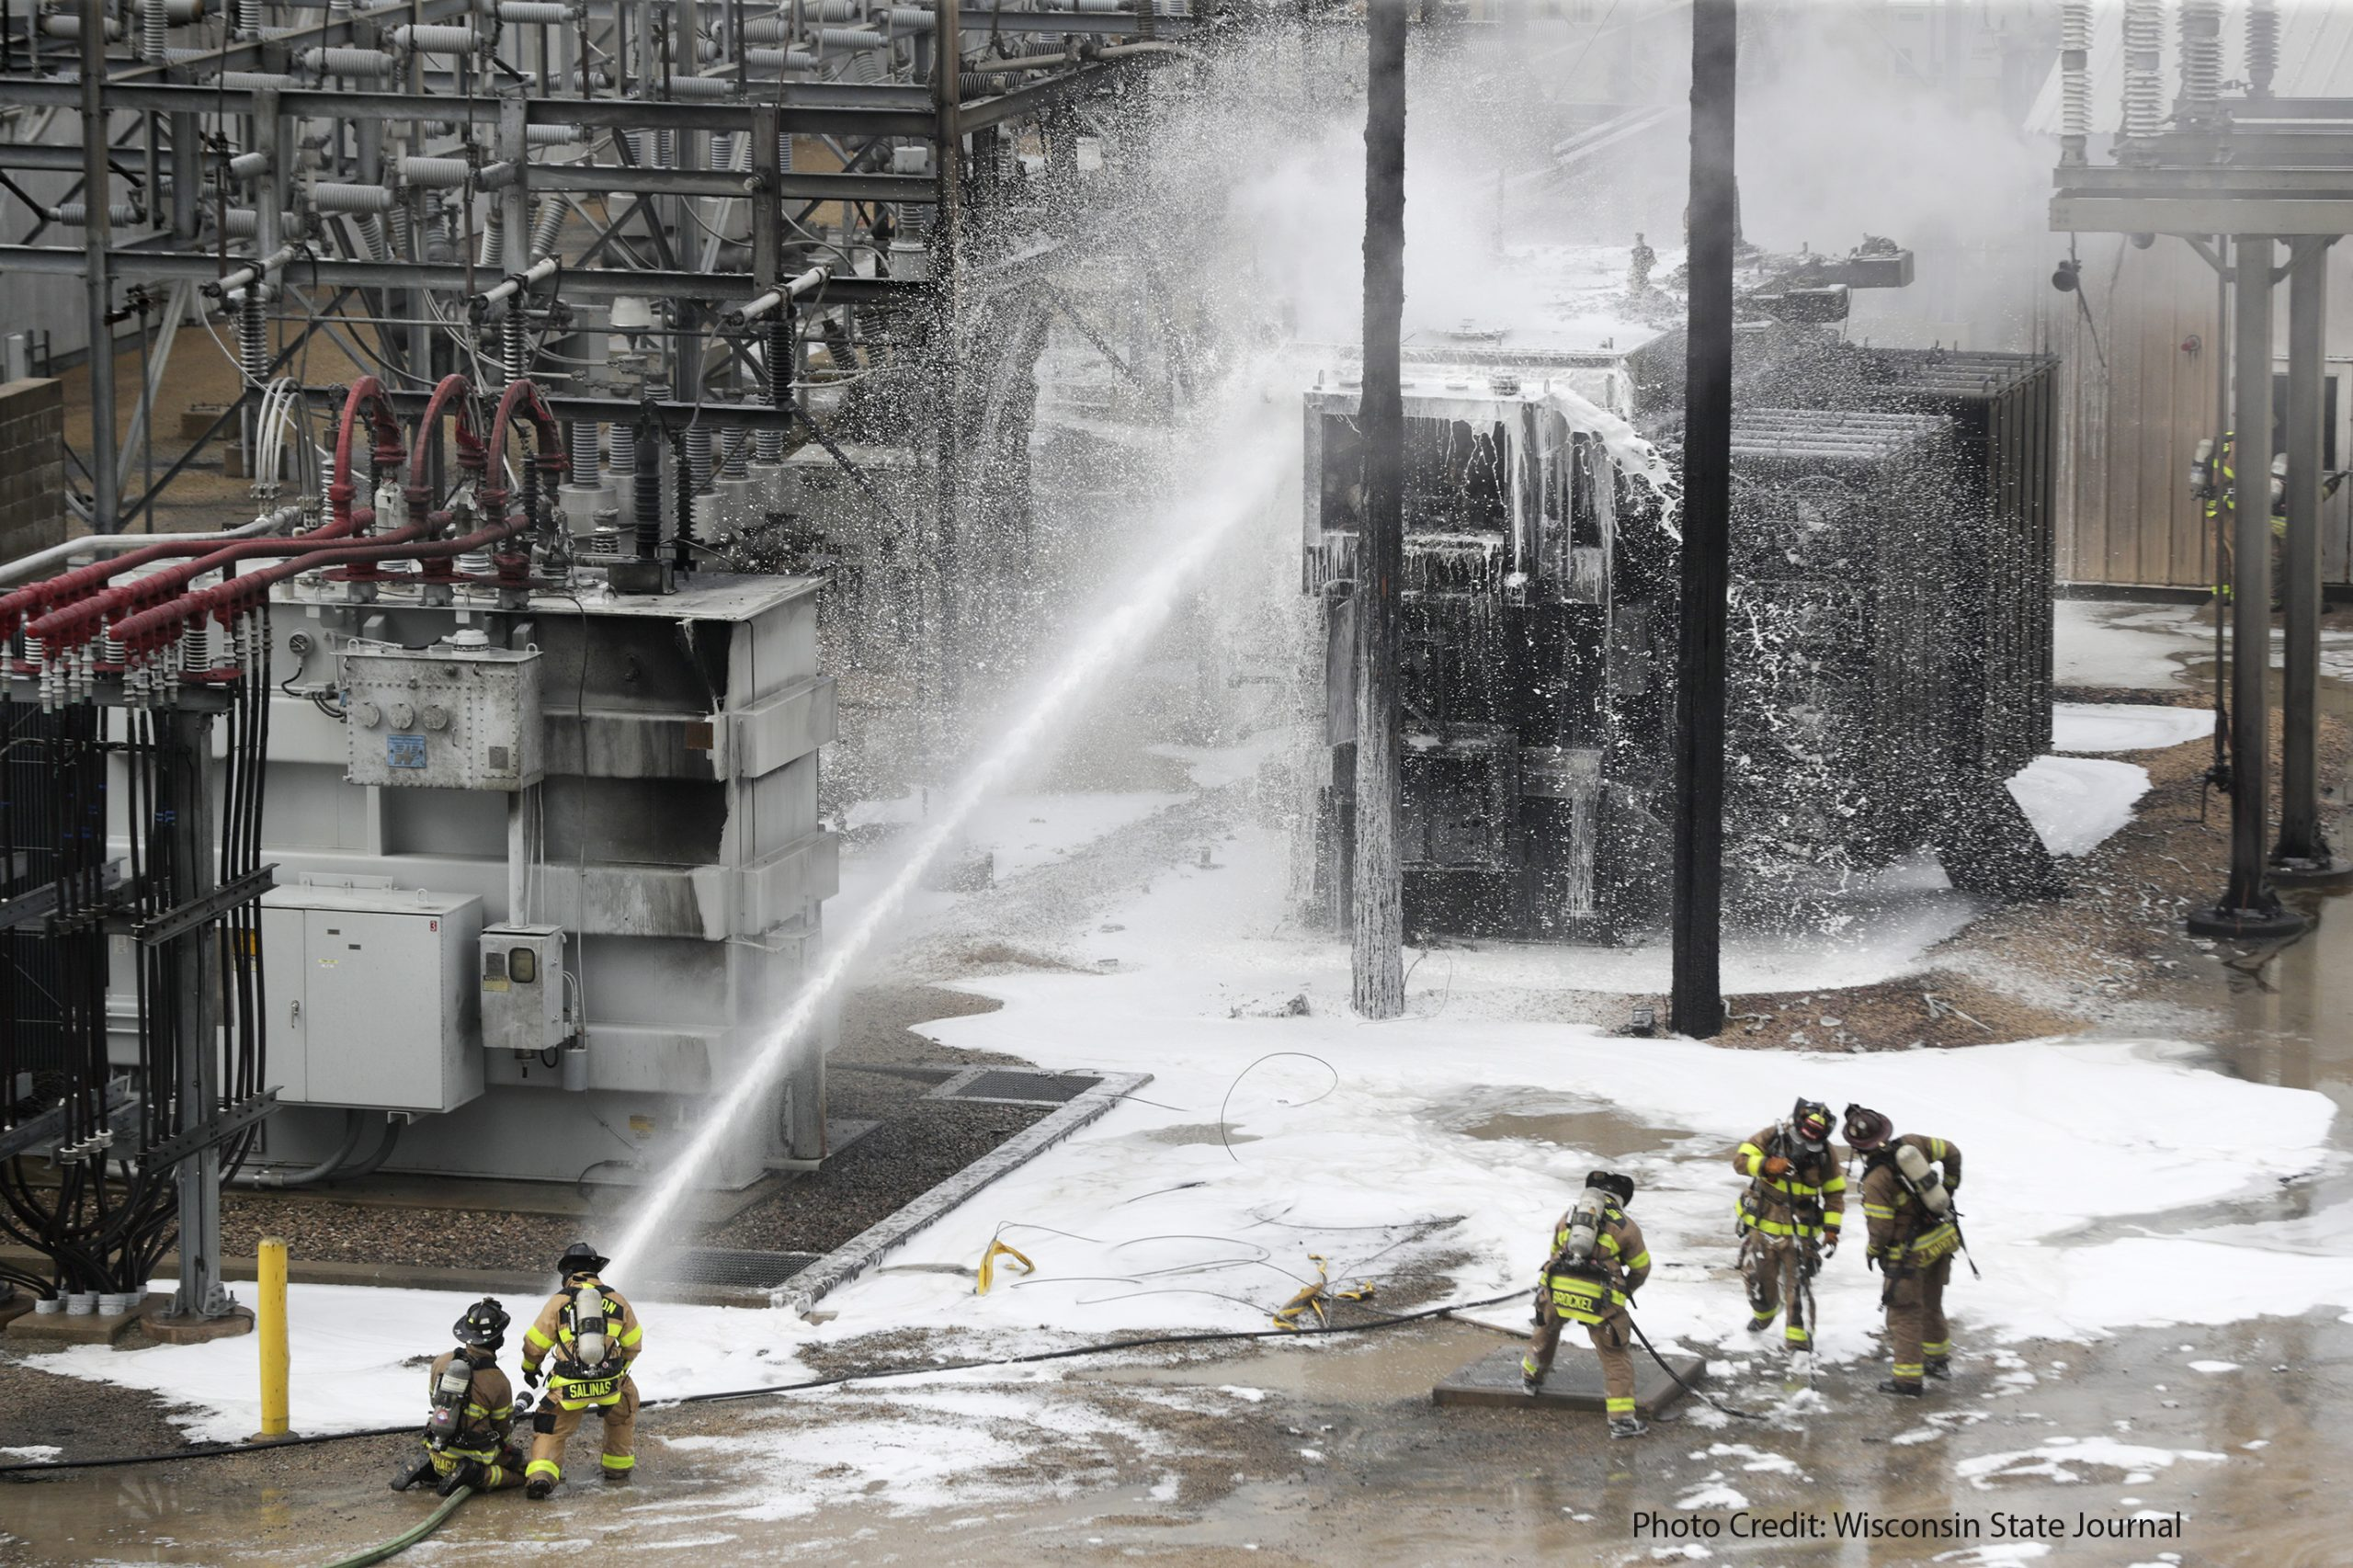 Madison Fire Department uses foam to contain large fire at Madison Gas and Electric